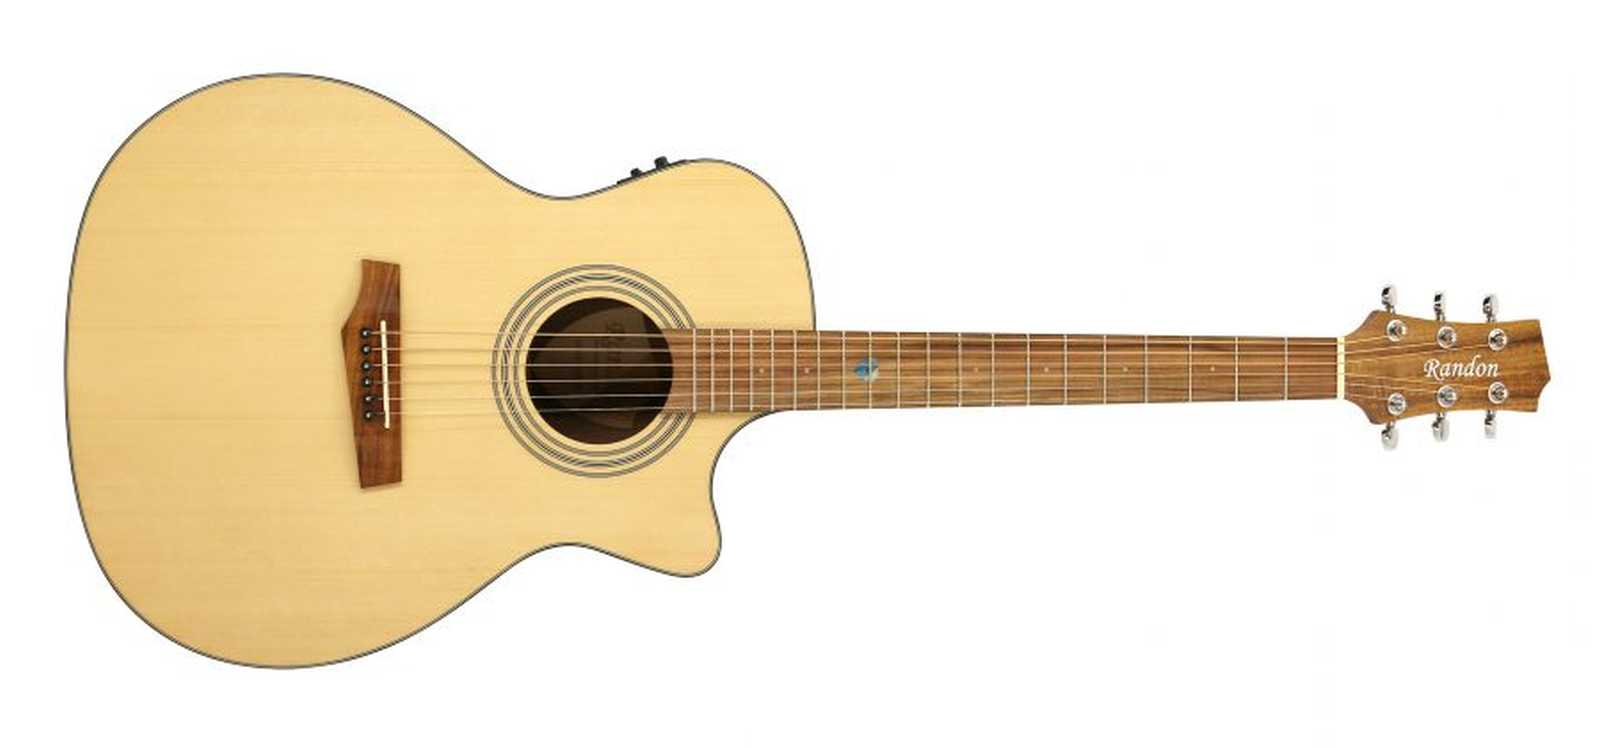 Randon Guitars RGI-04CE Westerngitarre